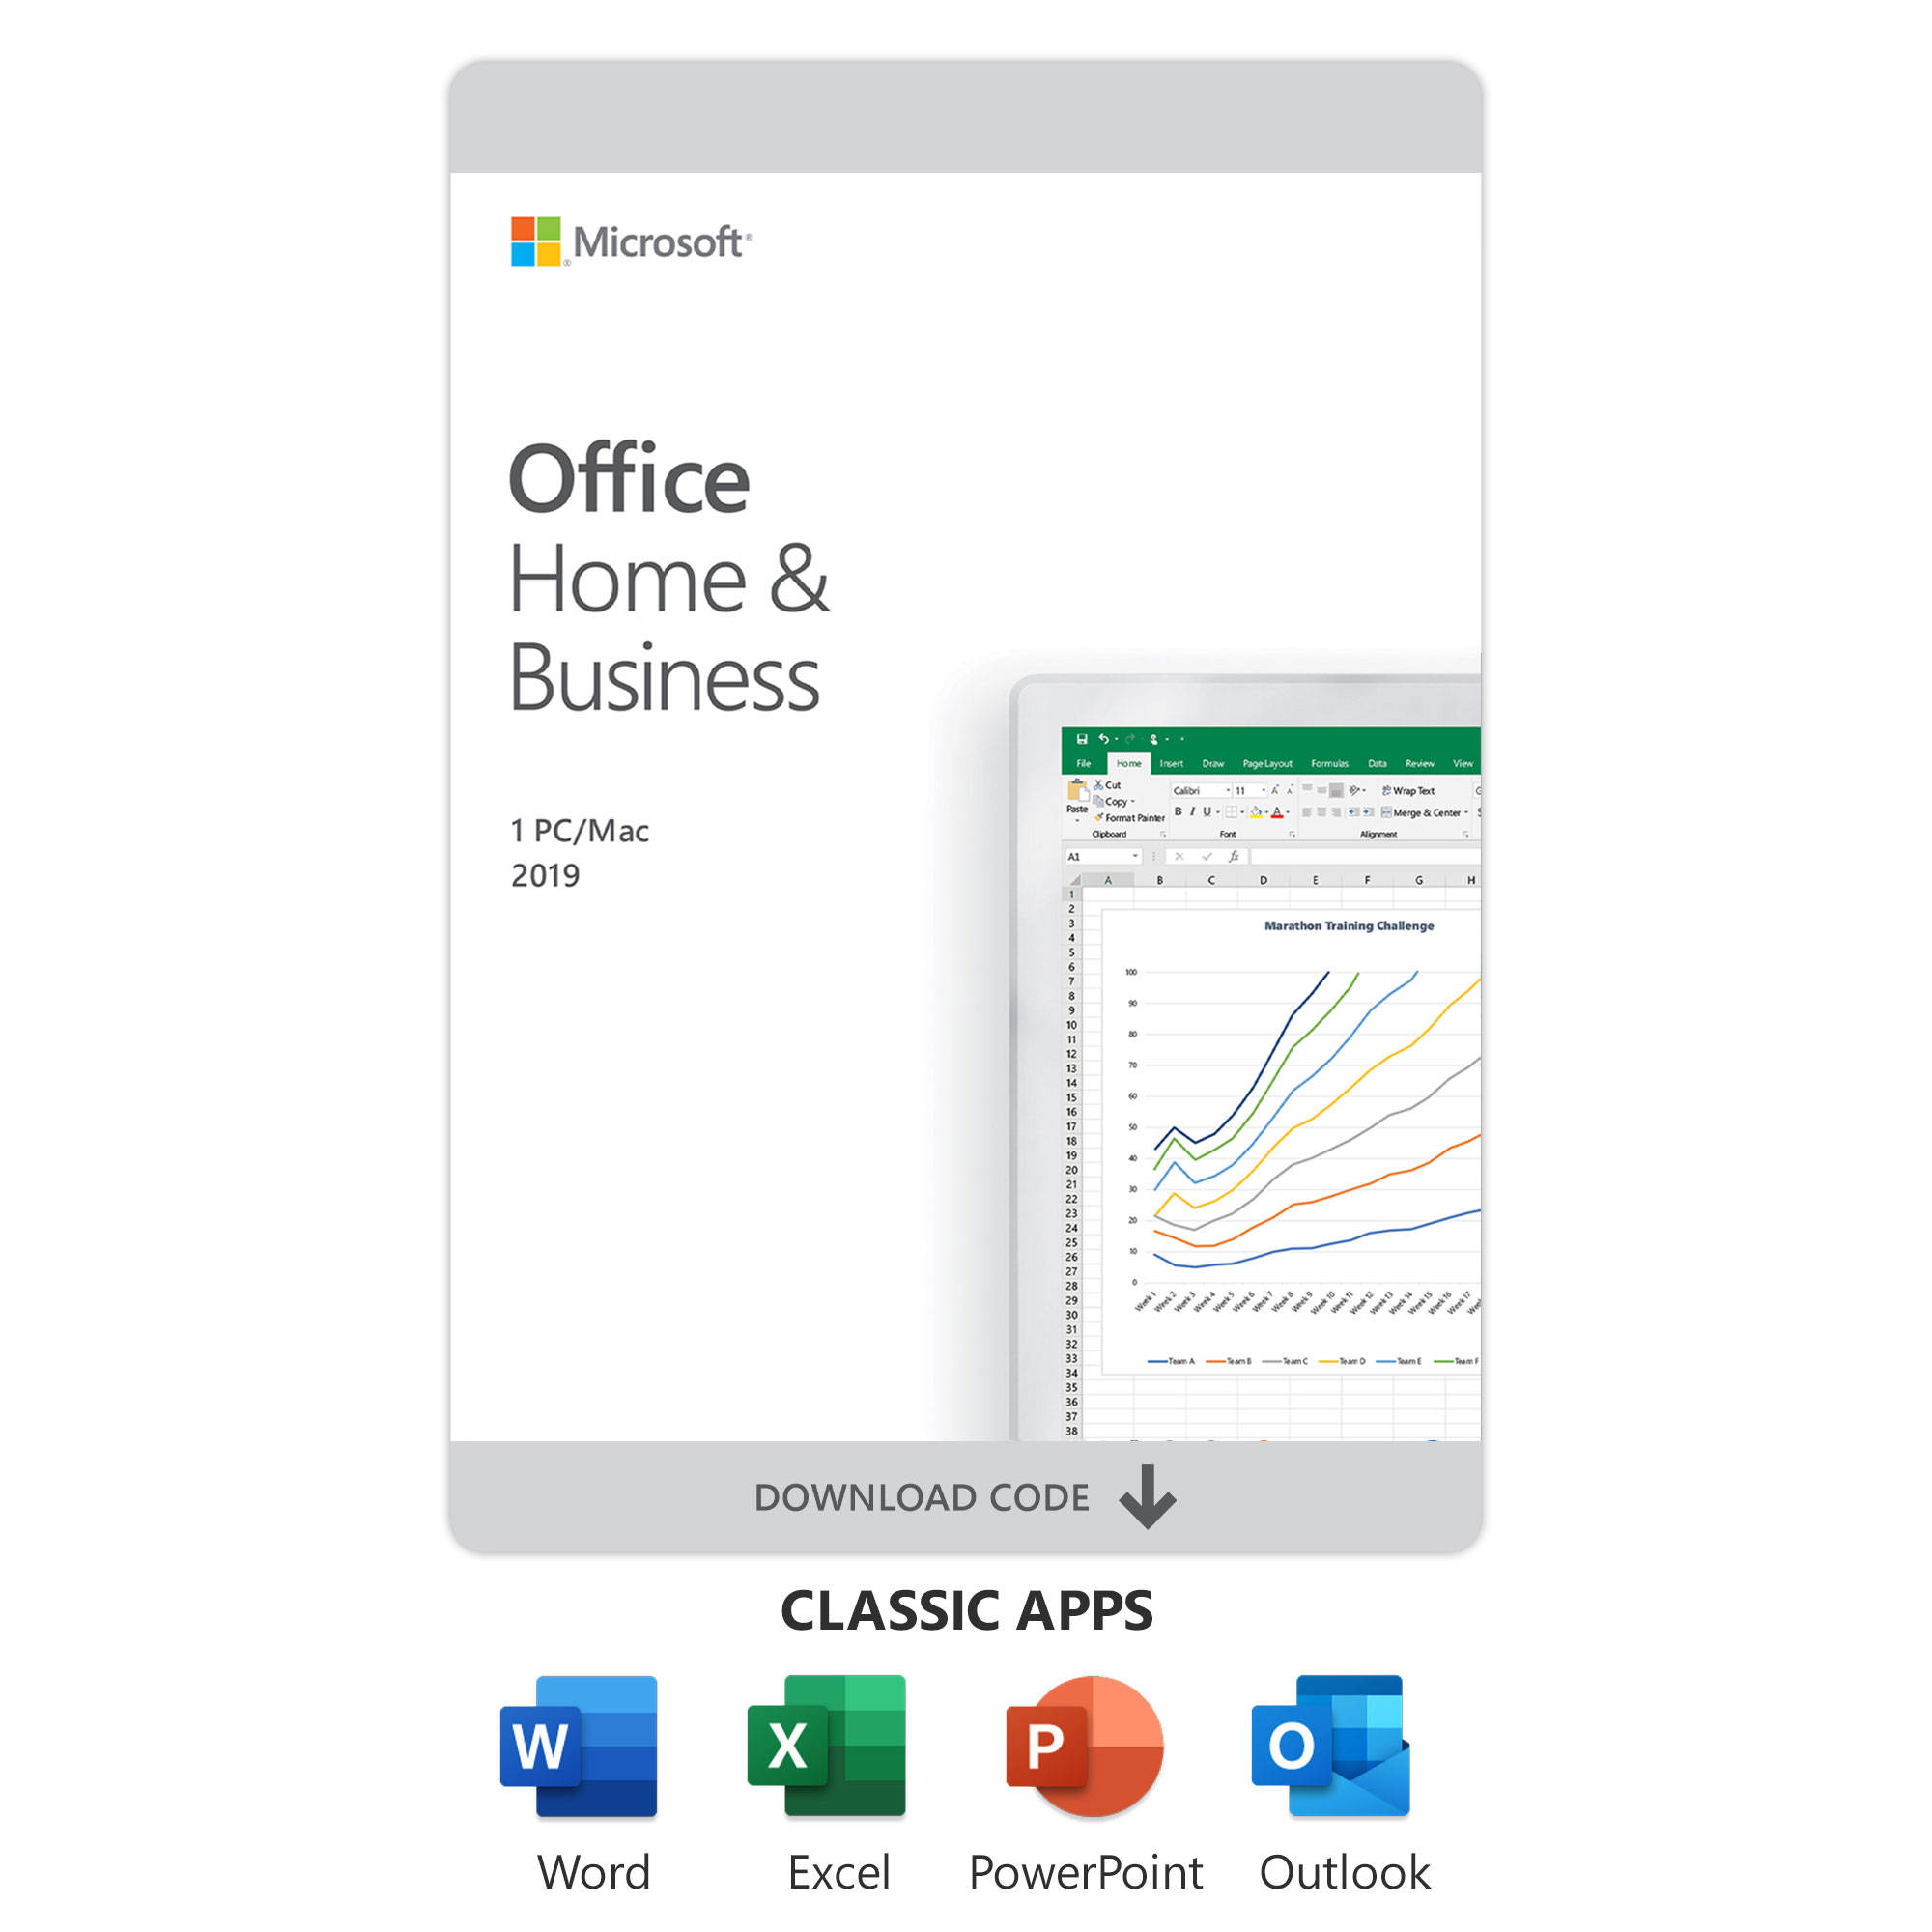 microsoft_t5d_03190_office_home_and_business_1437025.jpg